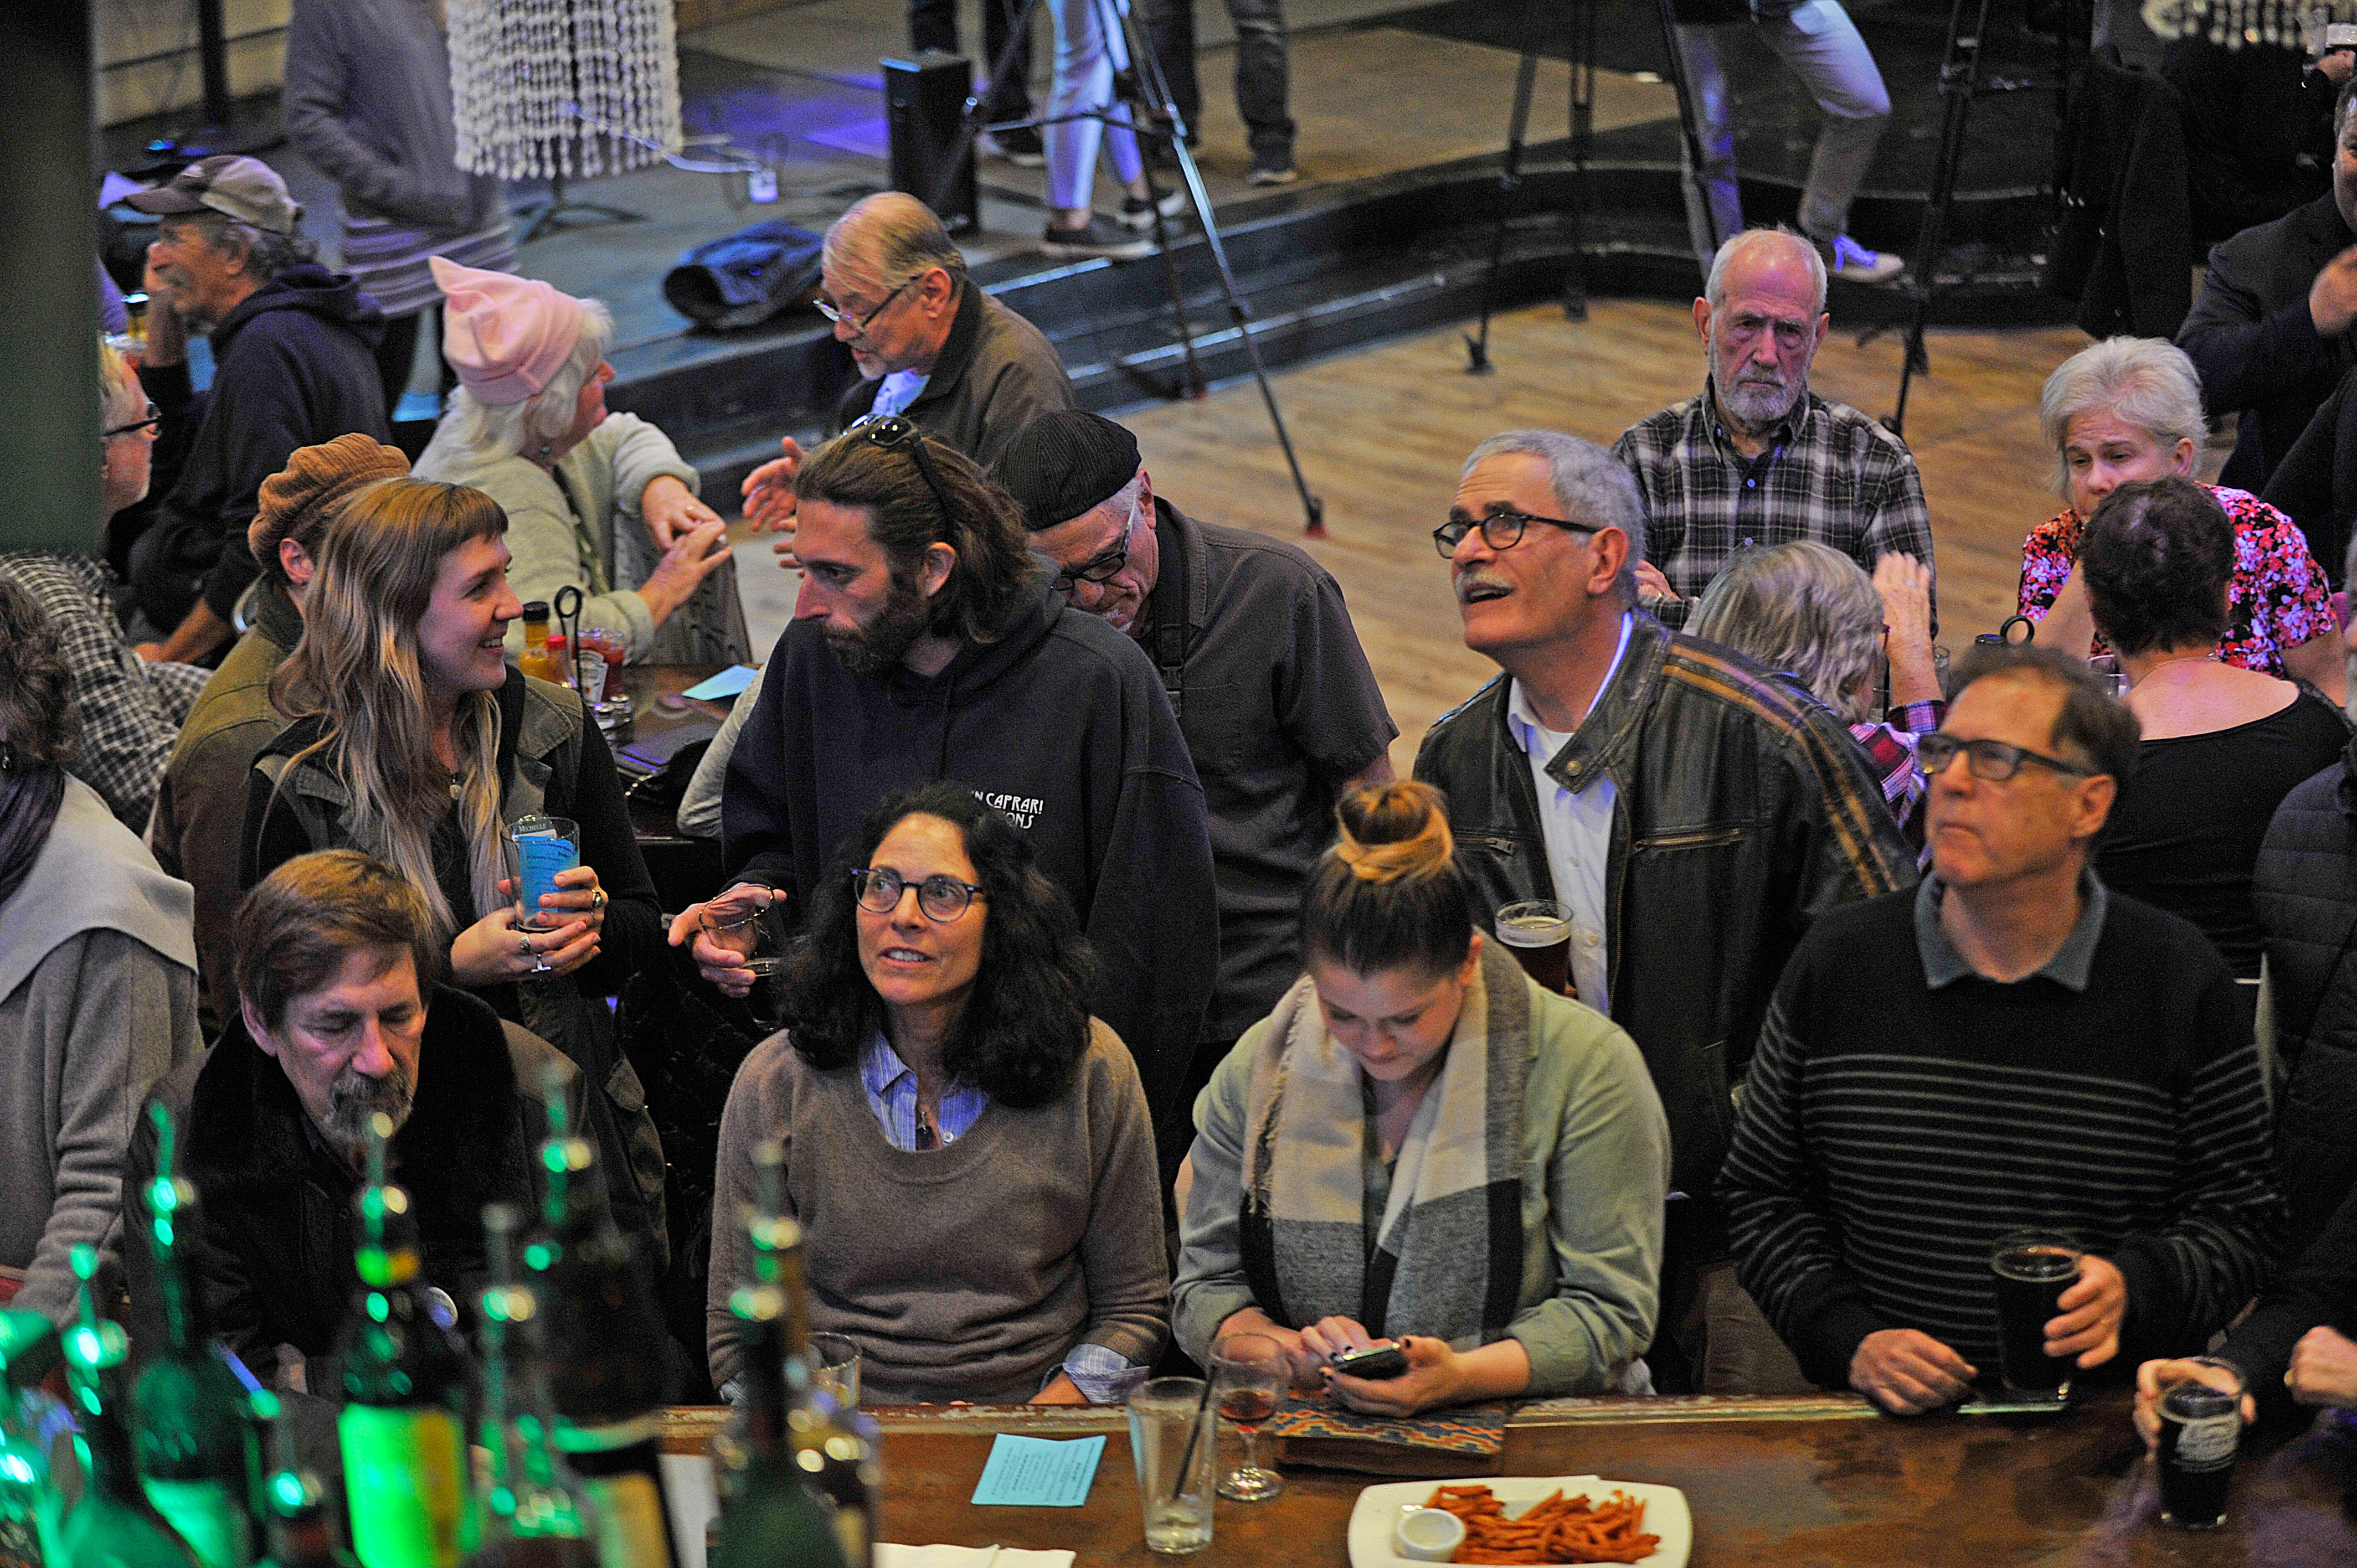 The Jackson County Democratic Party and Indivisible host an election night watch party at the Grape Street Bar and Grill in Medford. Jamie Lusch / Mail Tribune